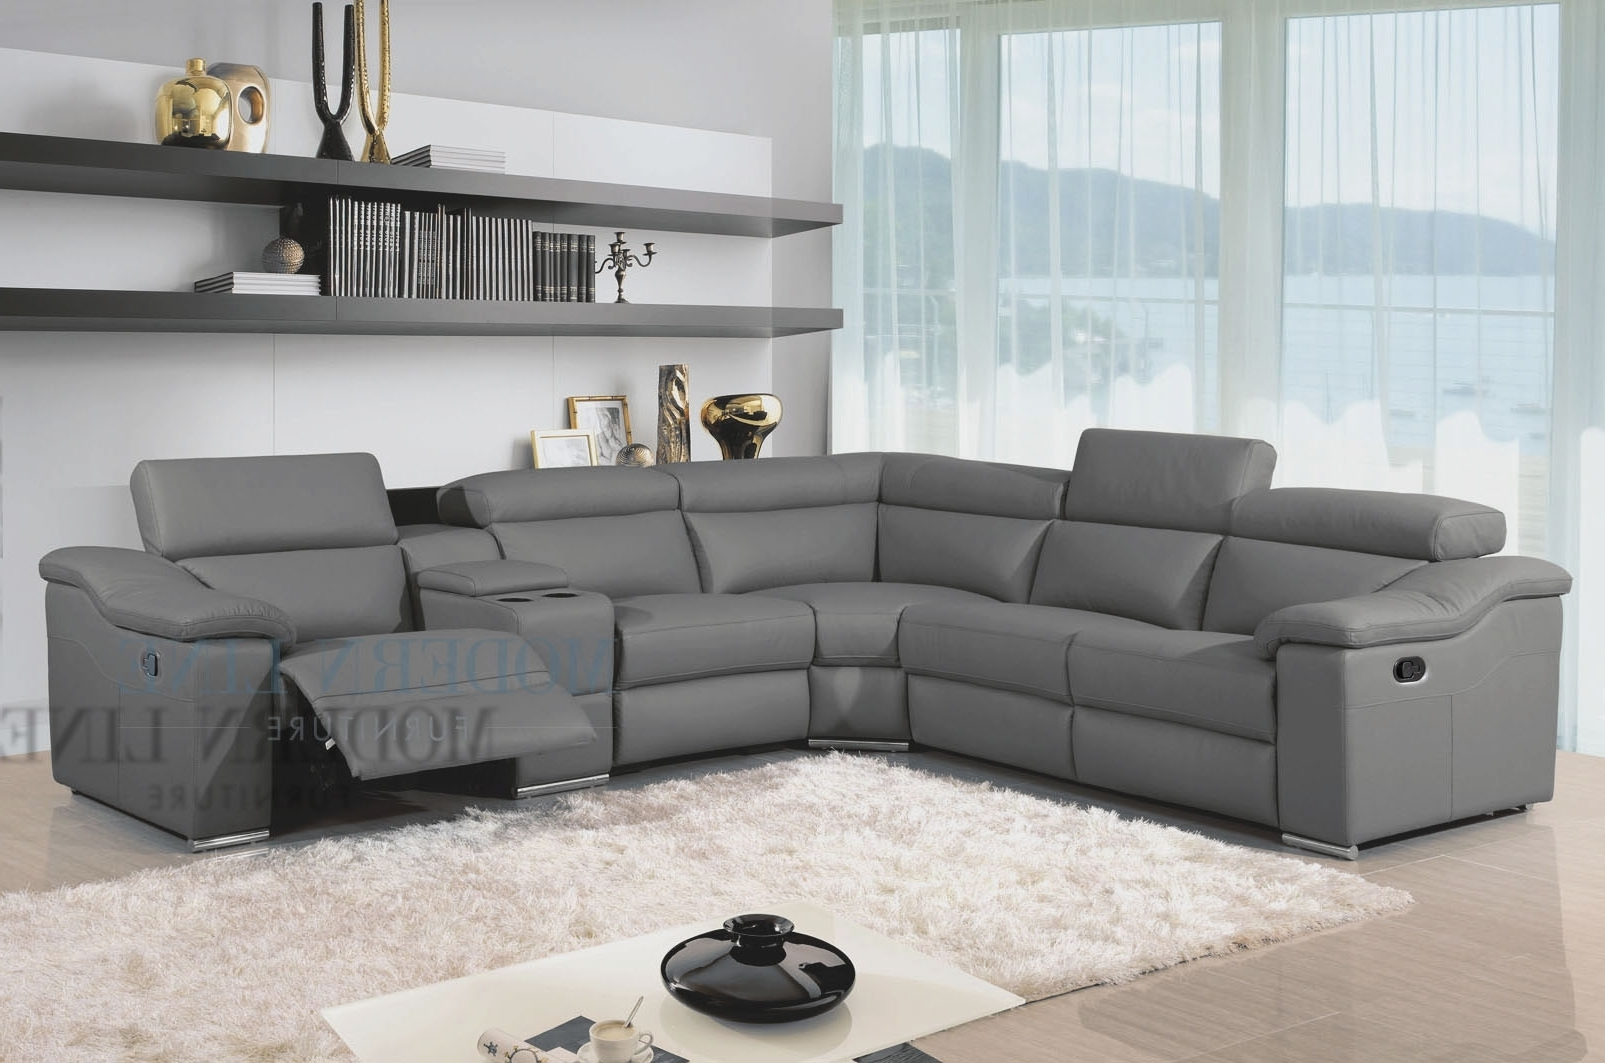 Incredible Modern Sectional Sofas Vancouver – Buildsimplehome Intended For Widely Used Vancouver Sectional Sofas (View 9 of 20)